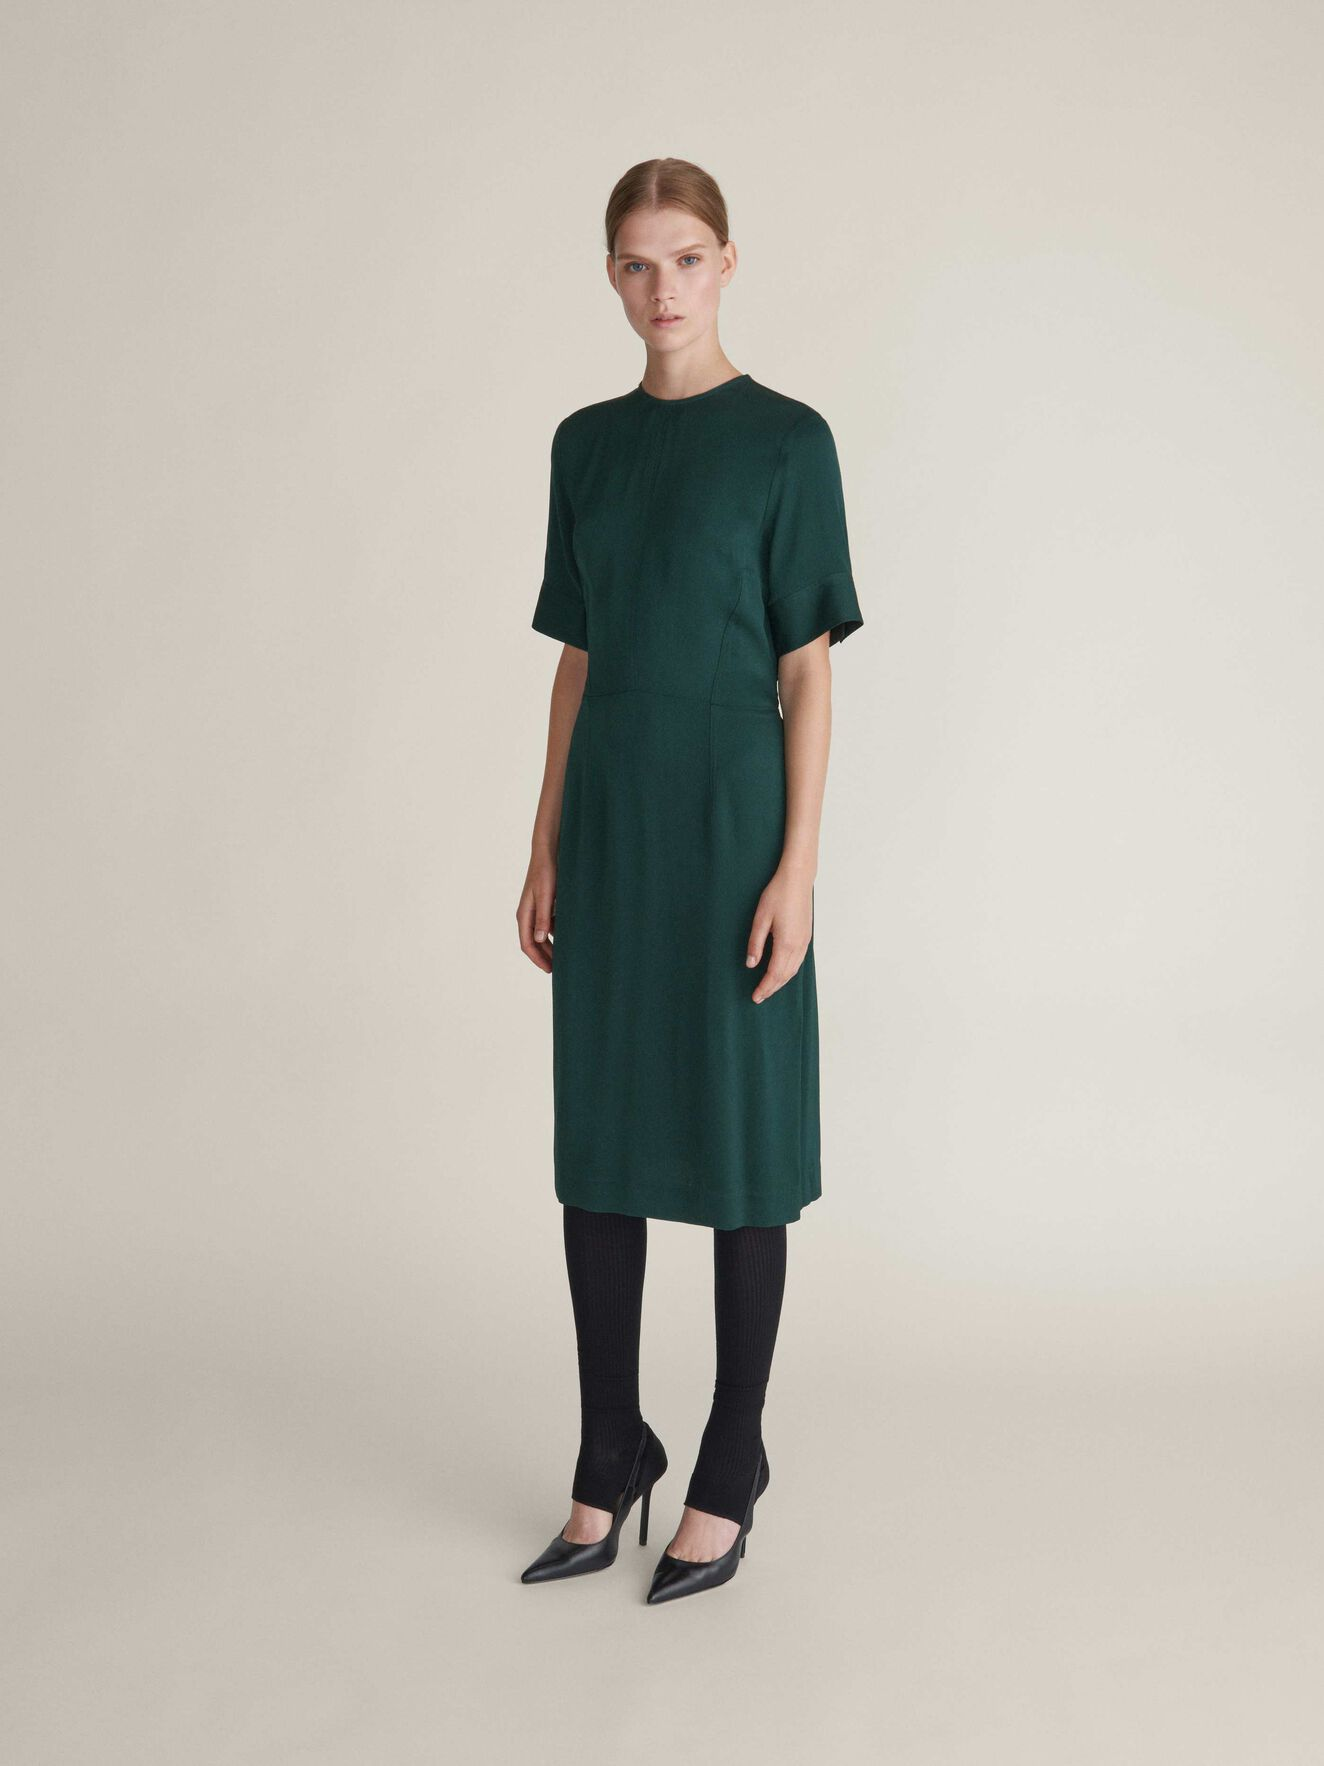 Alabama Dress in Dark Forest from Tiger of Sweden